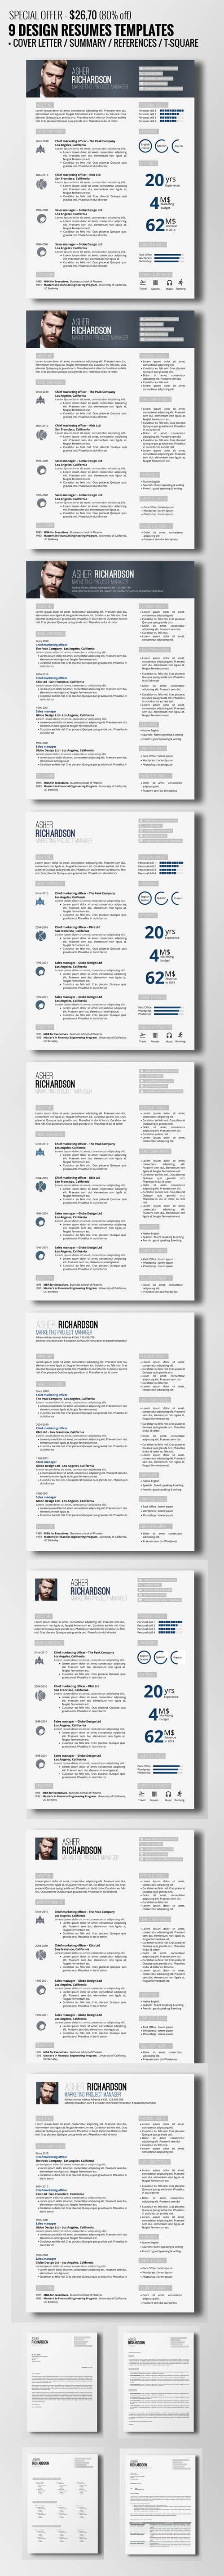 435 best resume images on pinterest resume design script fonts the best design resume templates off 9 templates cover resume summary references t square negle Images